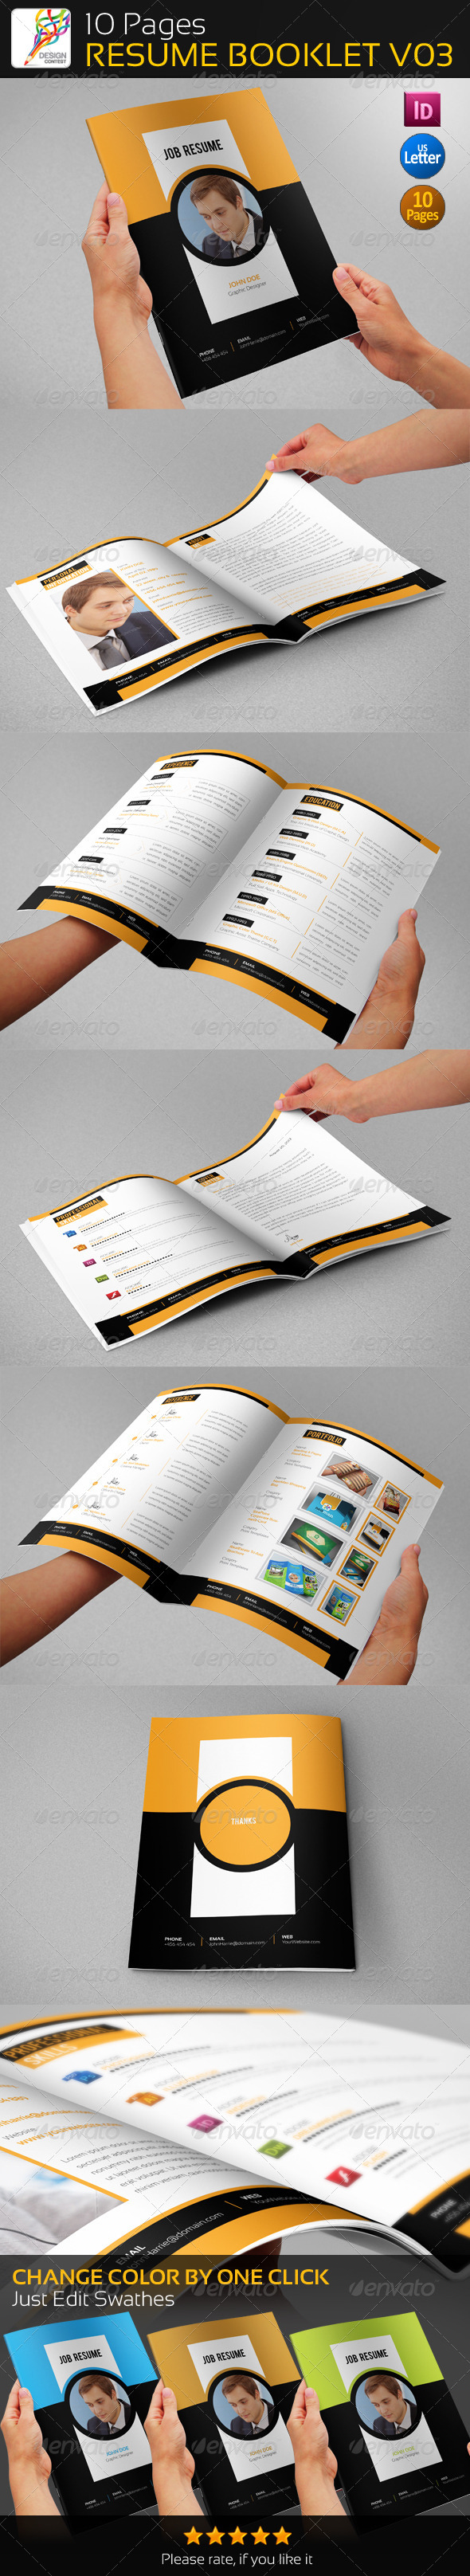 GraphicRiver 10 Pages Professional Resume Booklet V03 5424439